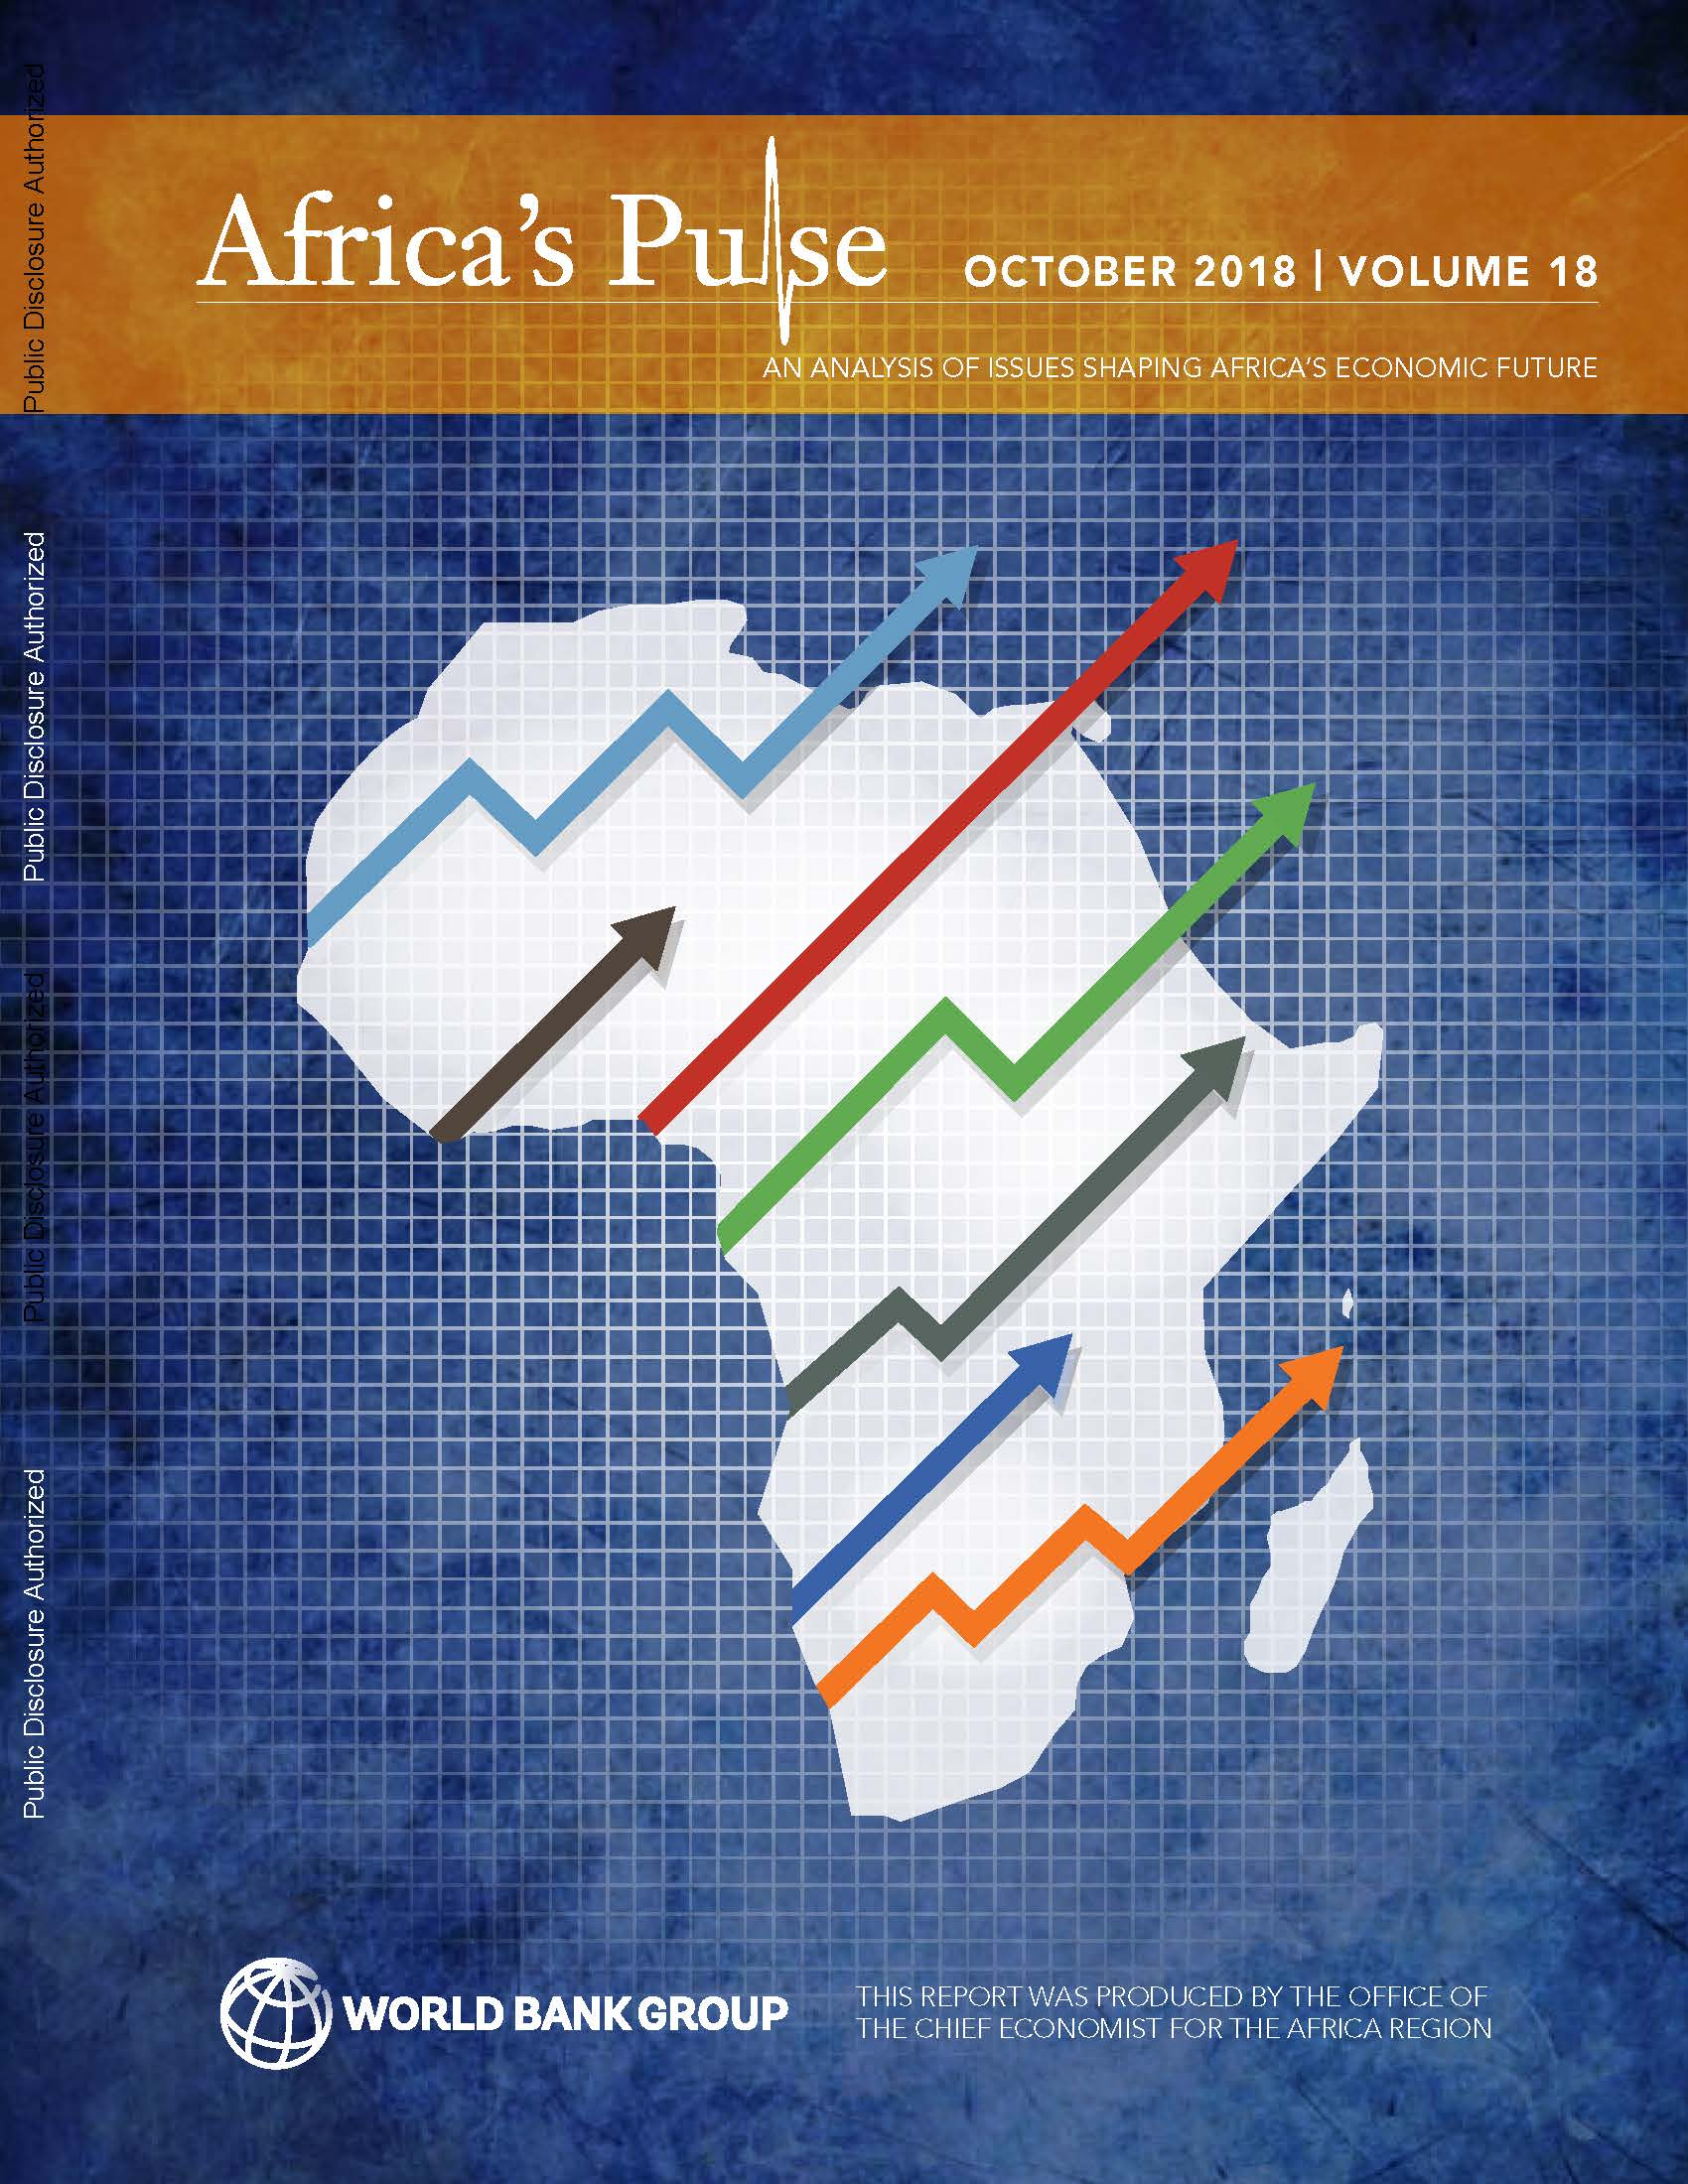 French pdfs available africas pulse no 18 october 2018 an analysis of issues shaping africas economic future gumiabroncs Image collections